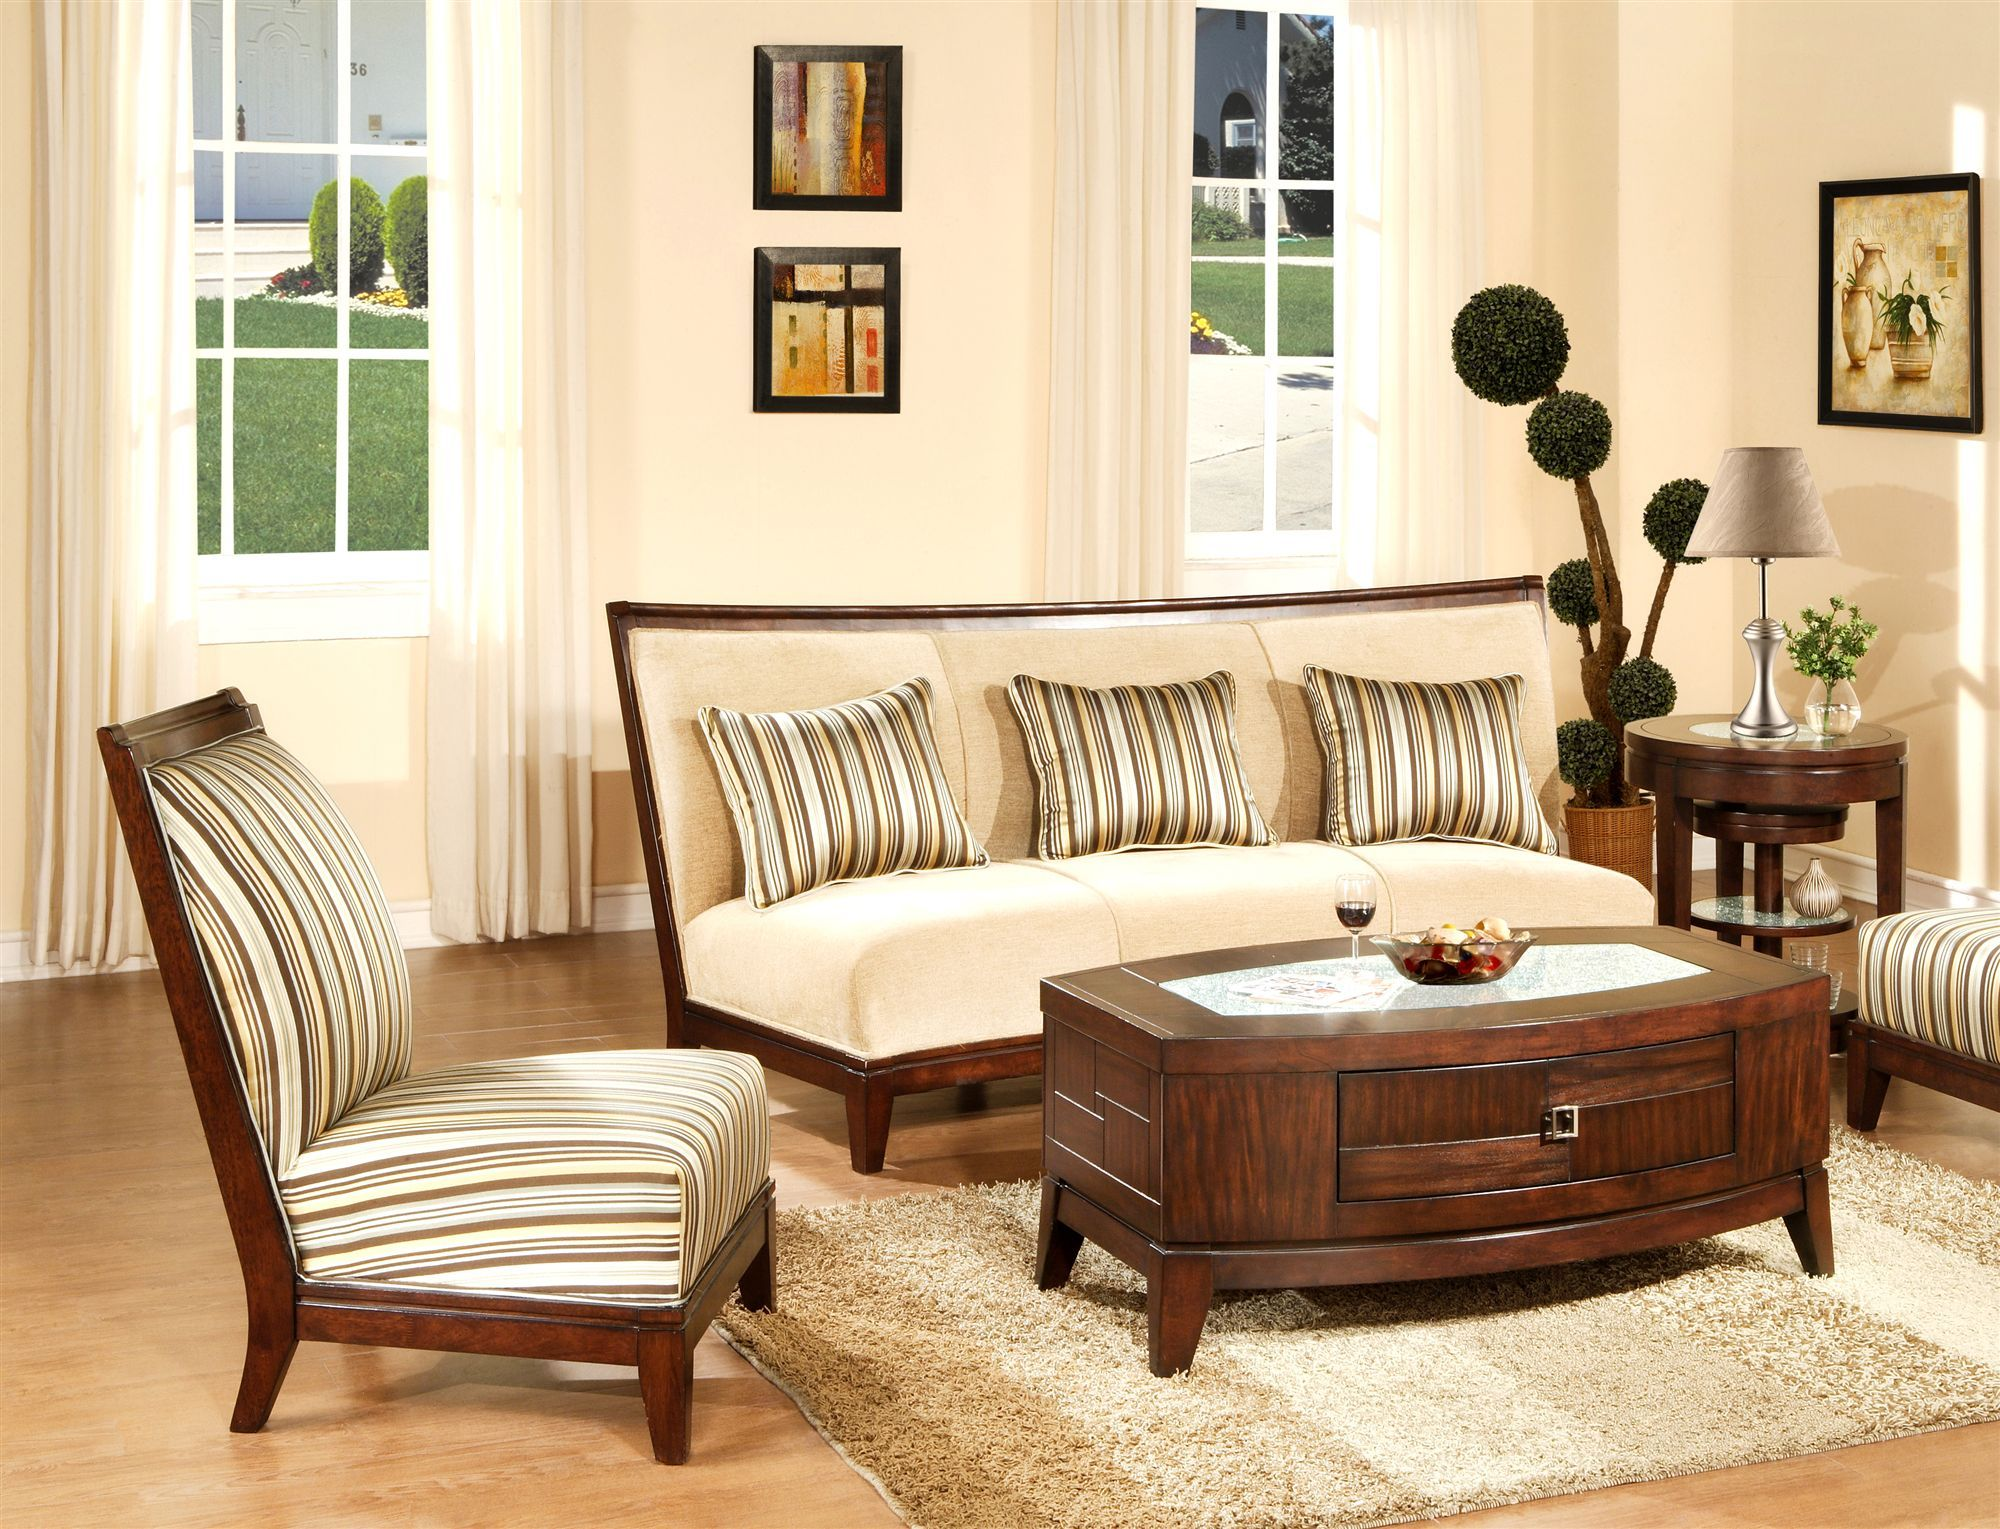 living room furniture sets picture of najarian furniture 4 pc georgio living room set in holmes